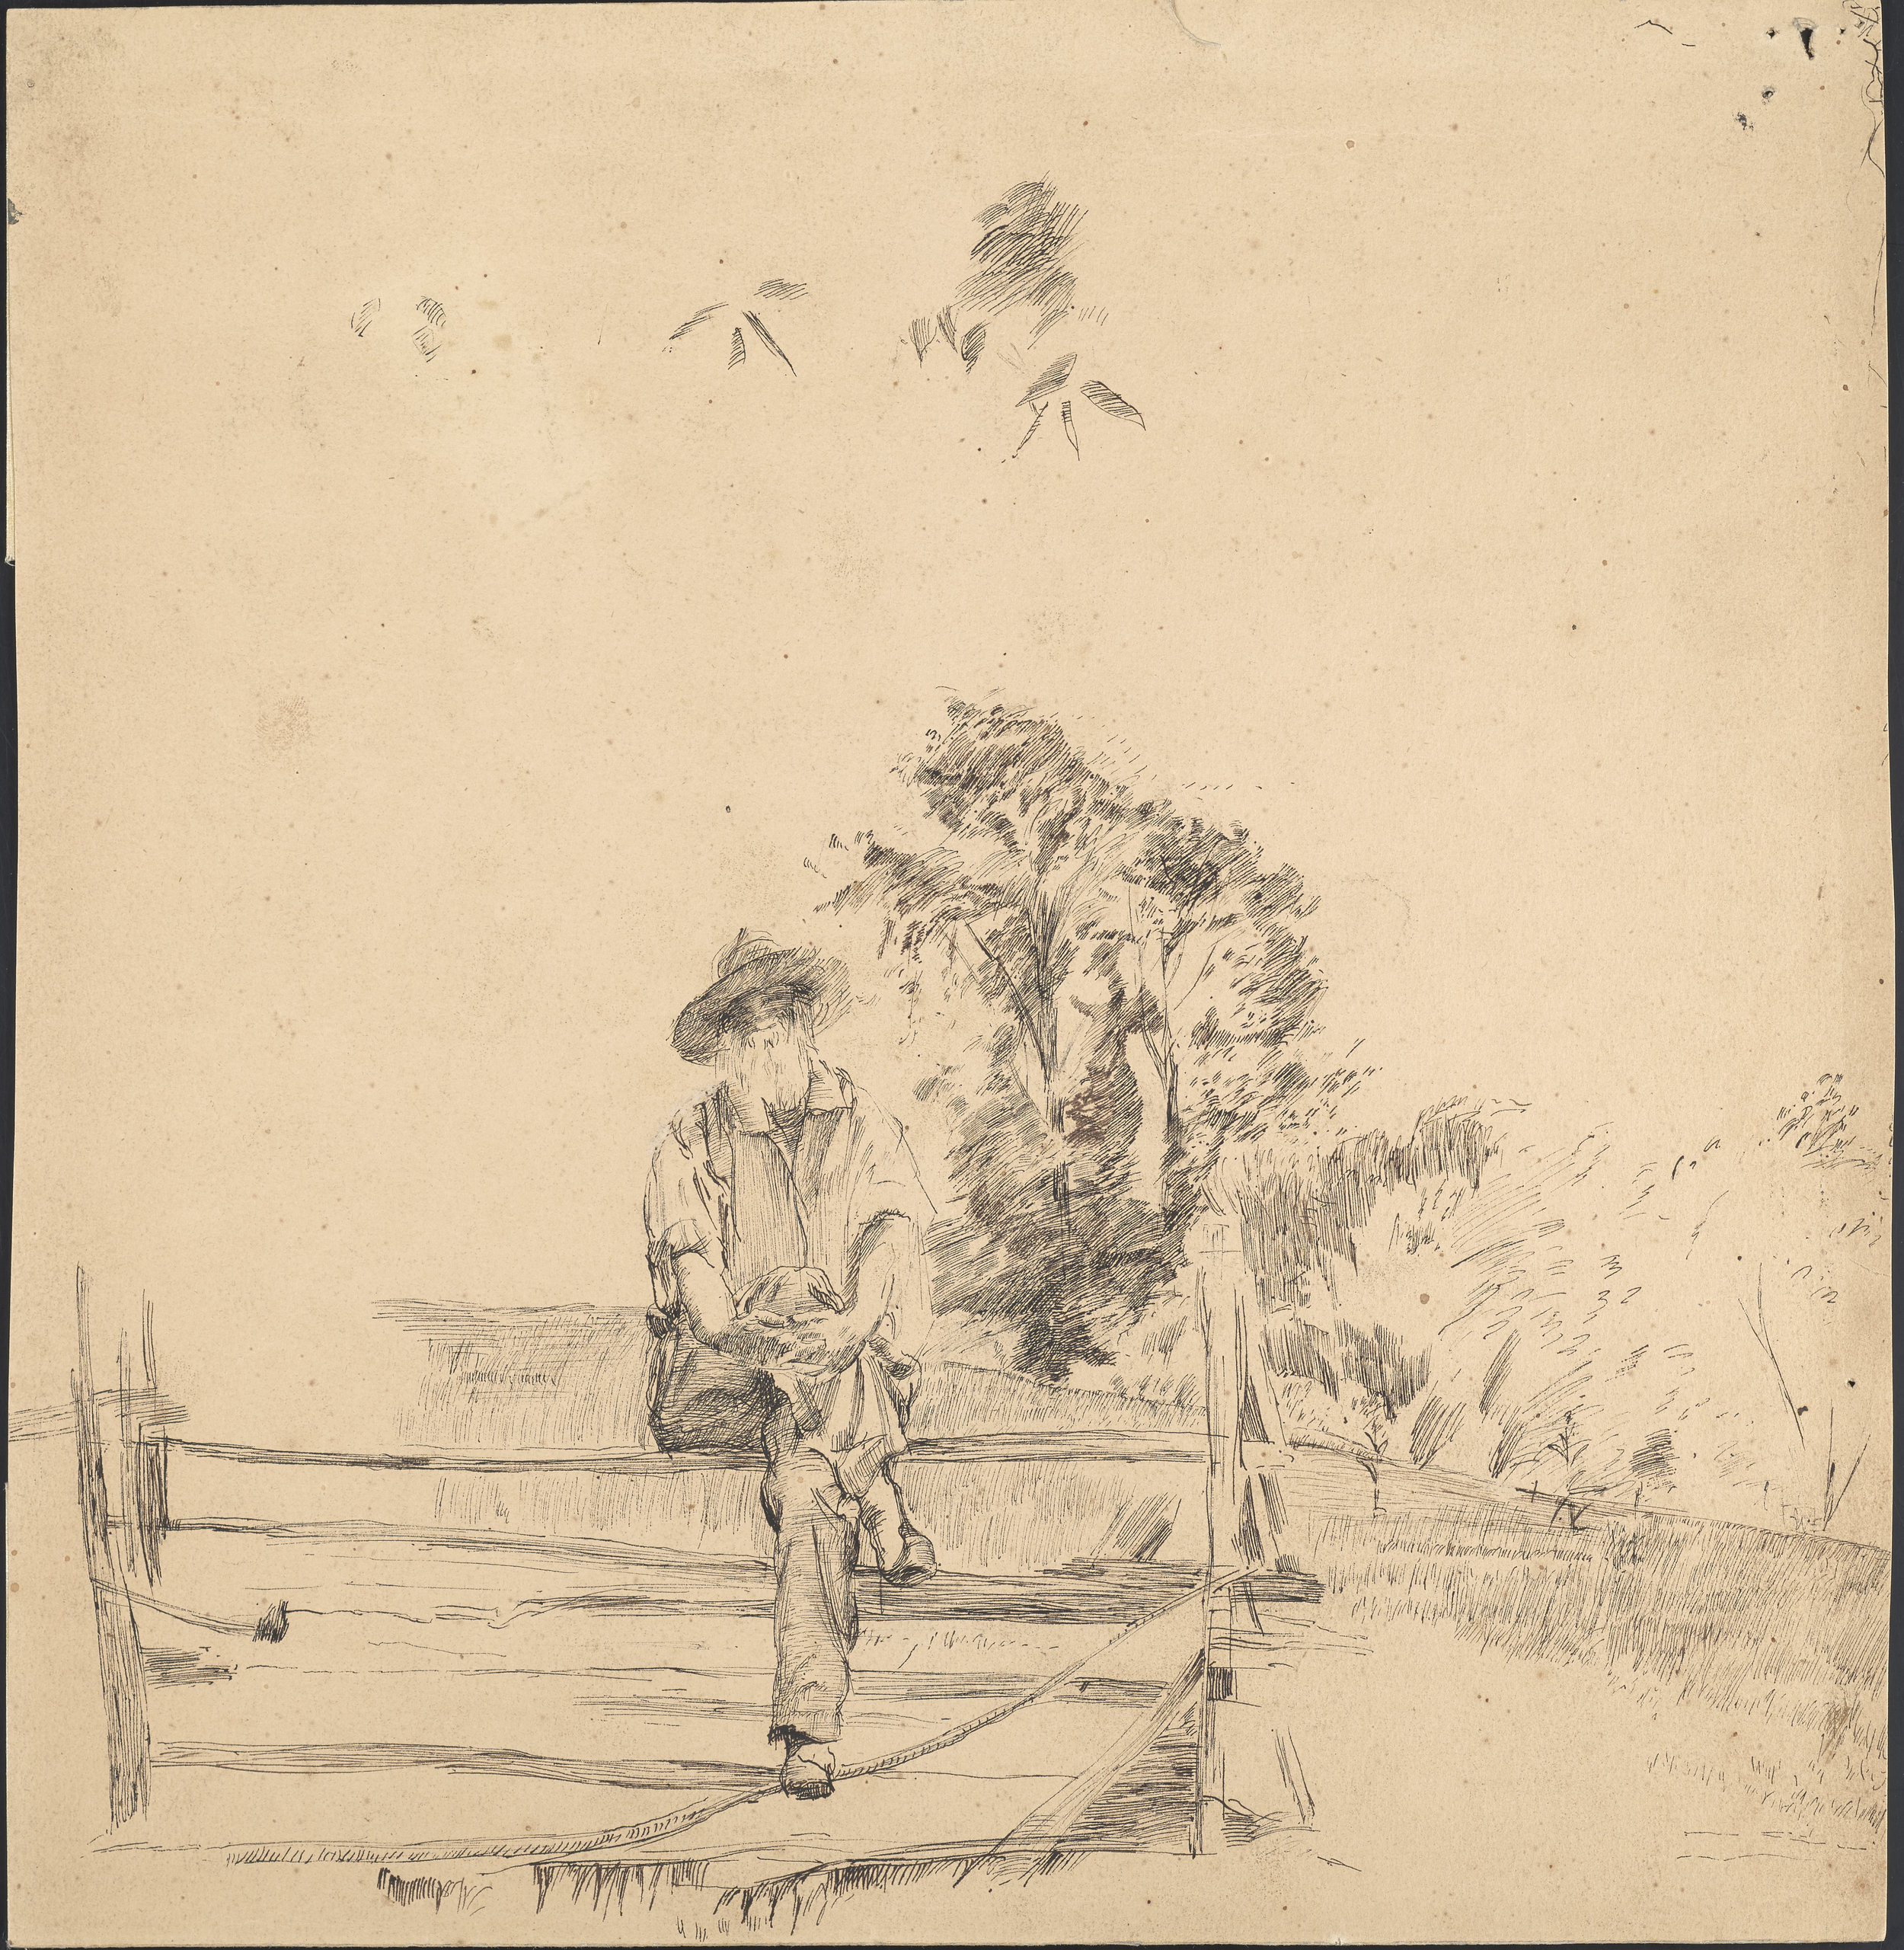 MSColl1083_Whitman_1878_Gilchrist_sketch_2_recto.jpg